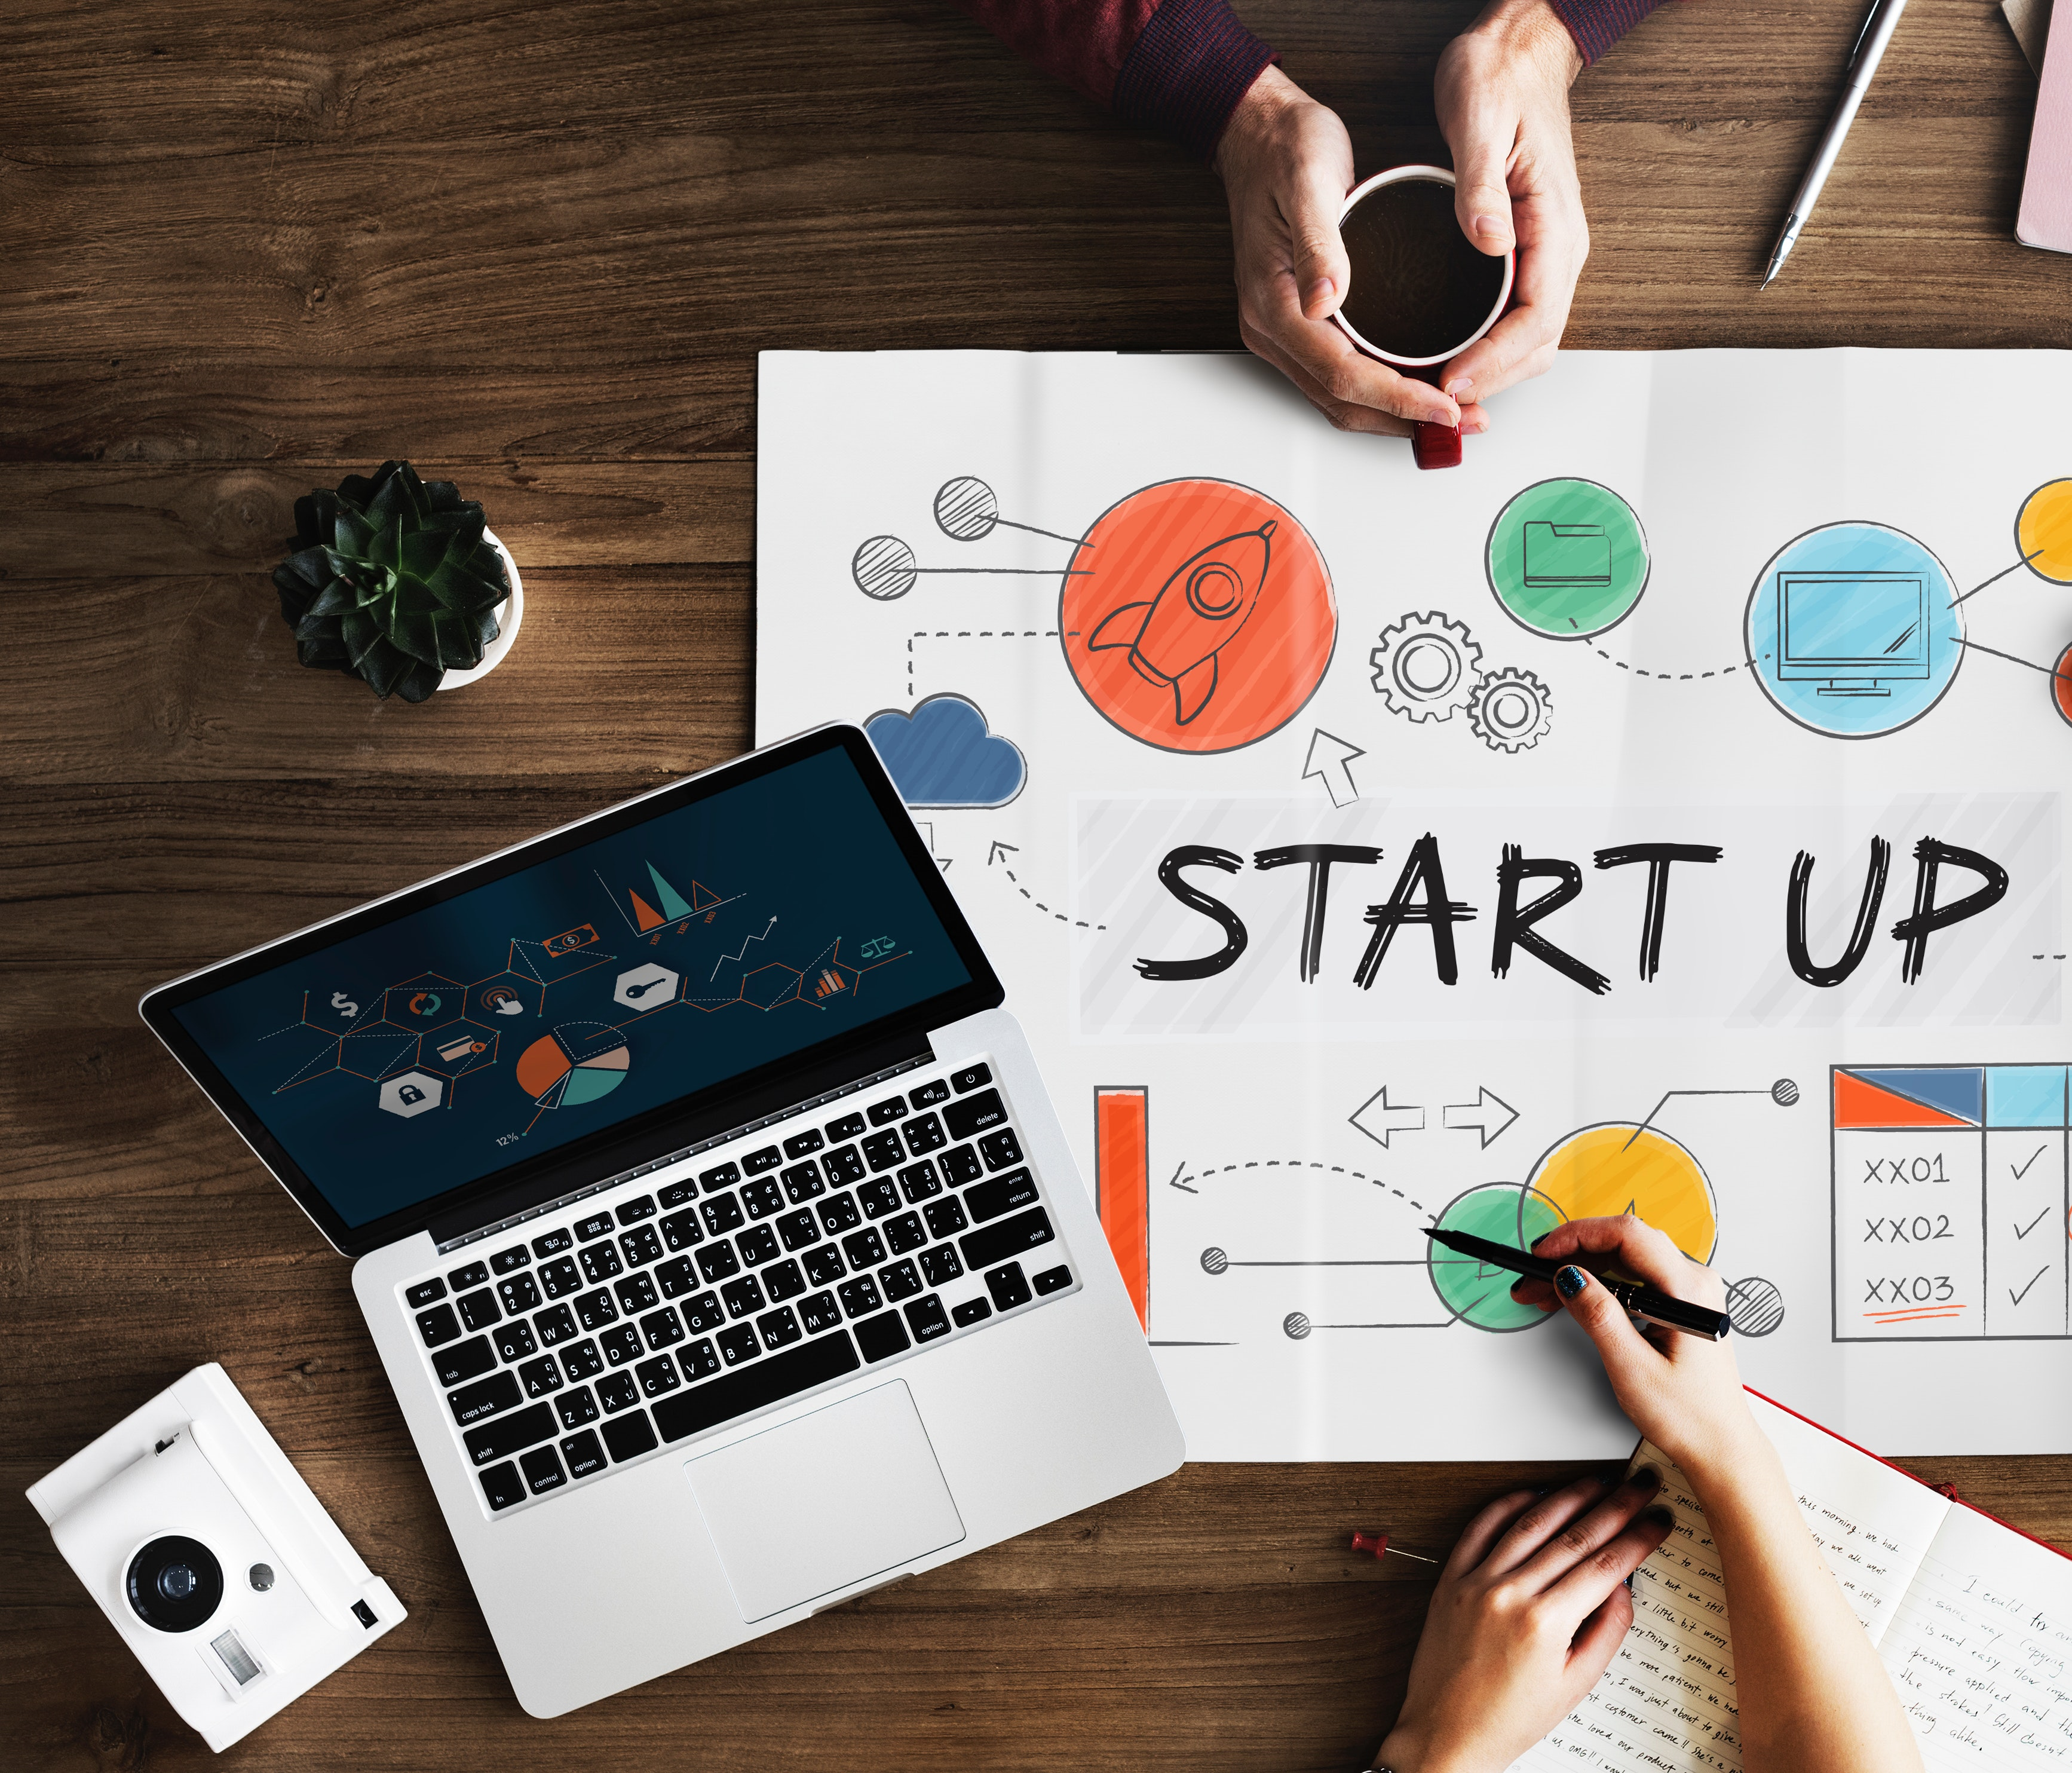 7 Steps to Starting a Small Business in Ohio - Growth Capital